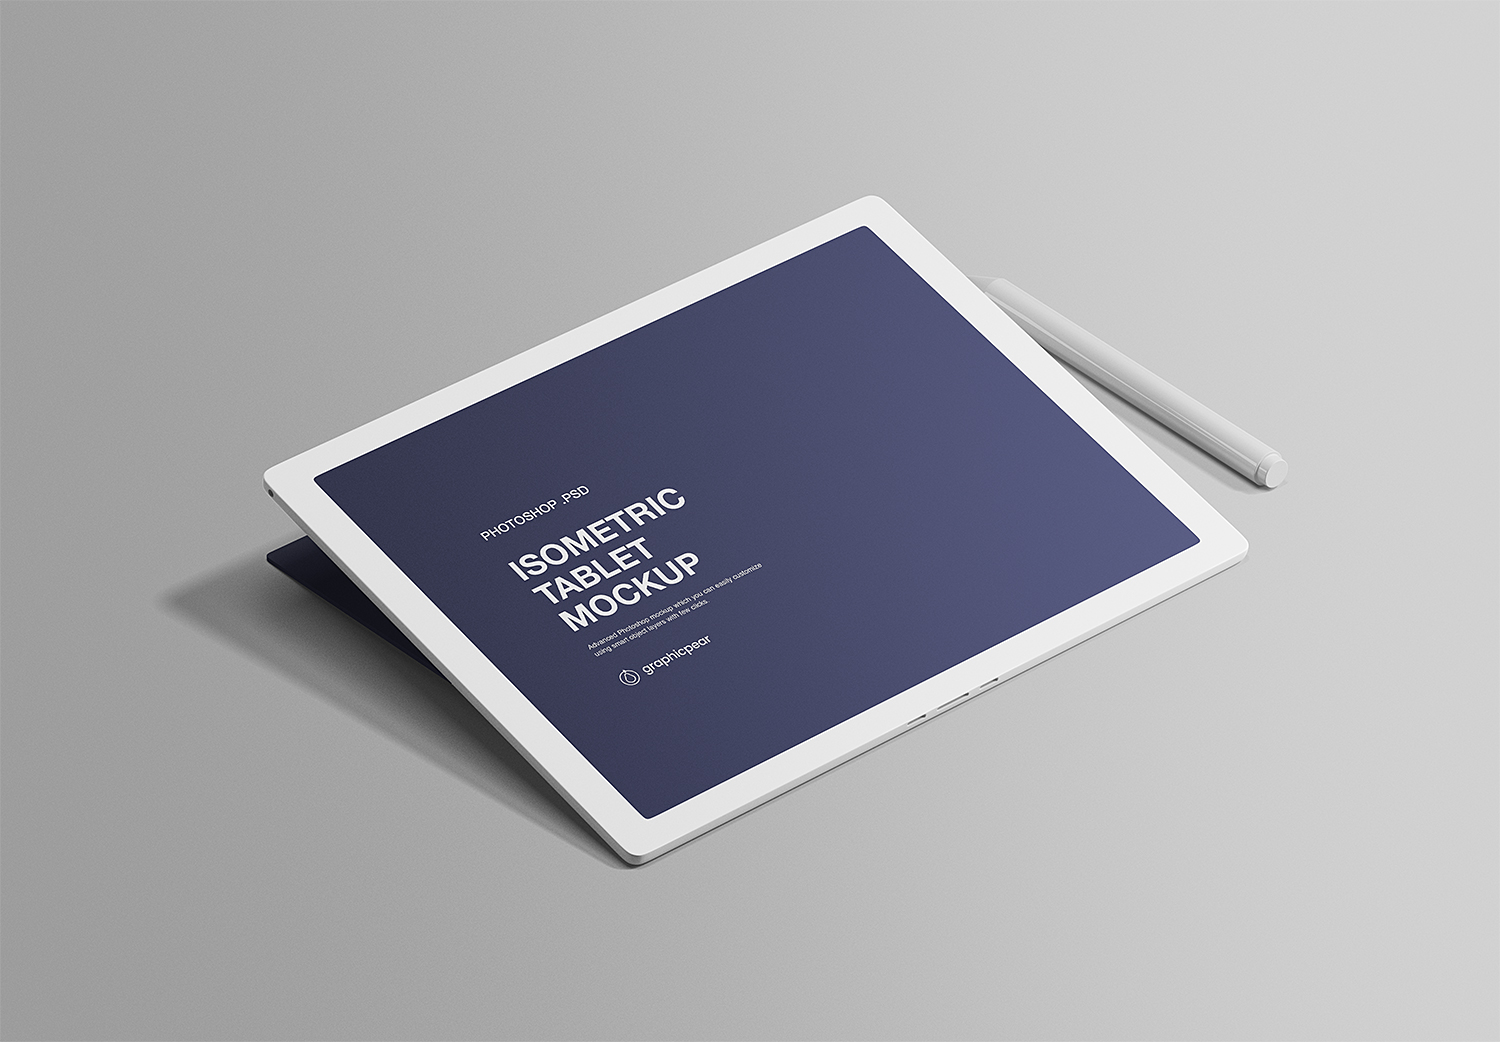 Free Isometric Tablet Mockup